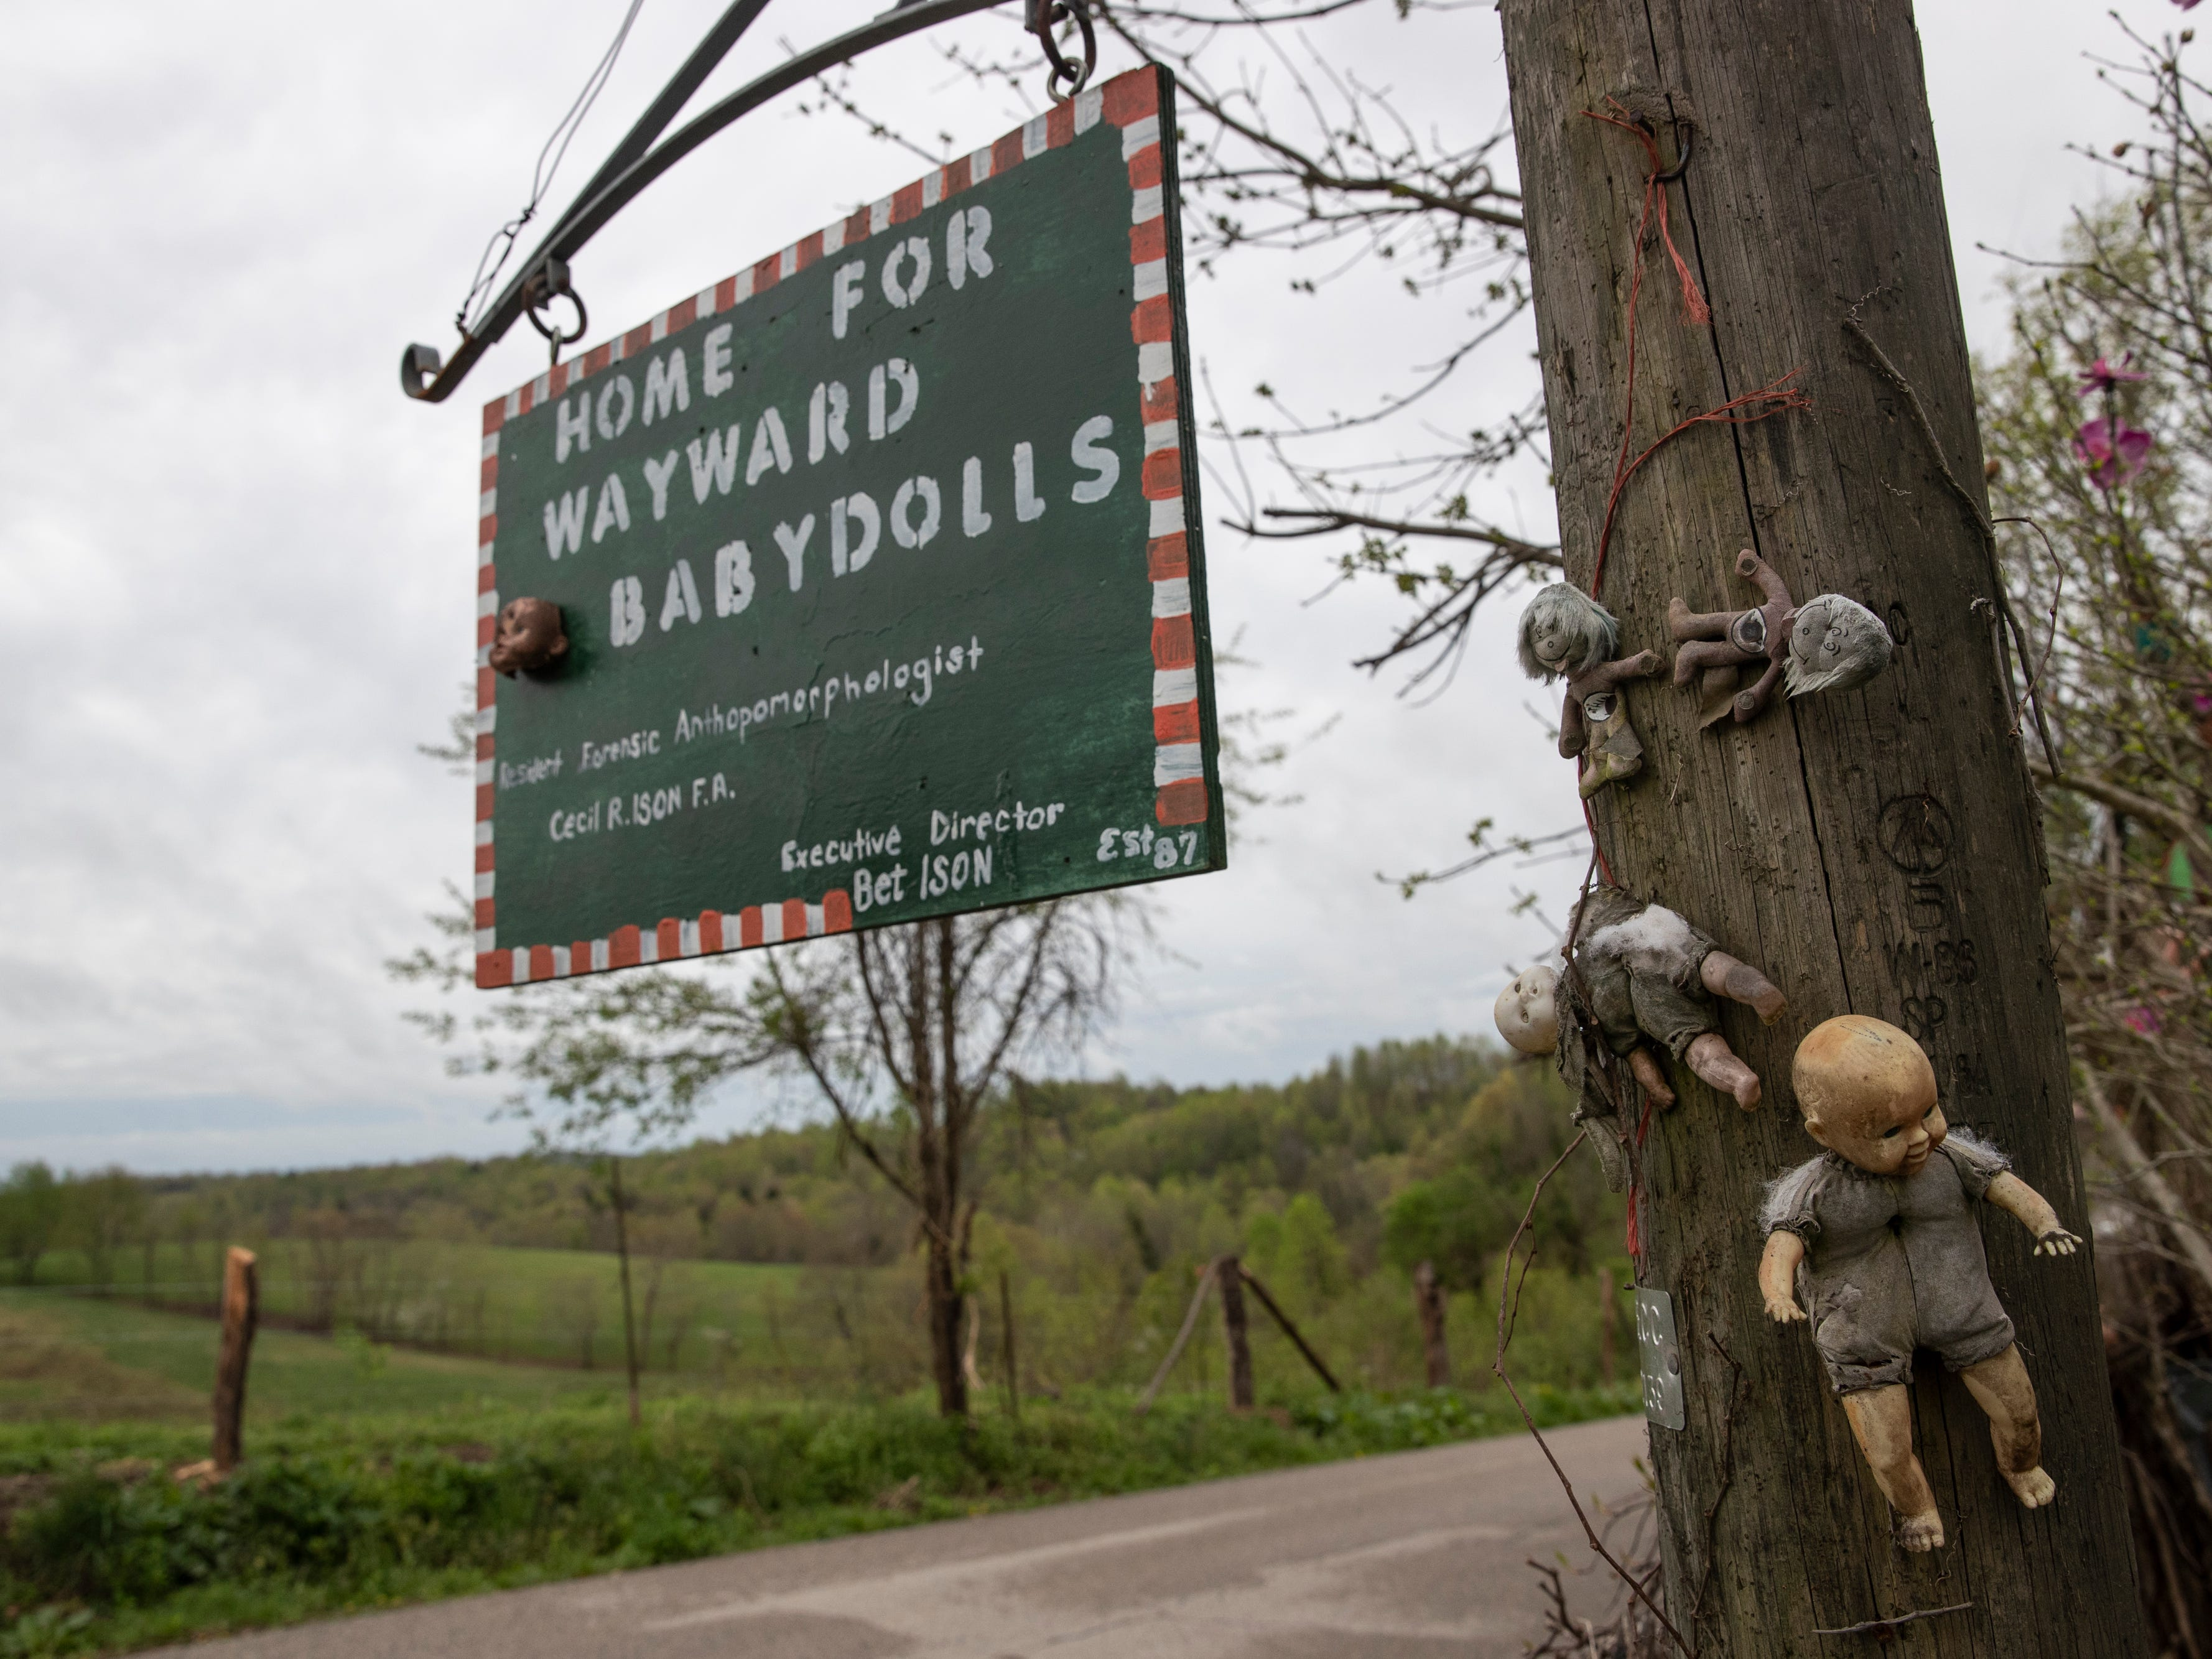 The Home for Wayward Babydolls sign hangs outside the home of Cecil and Bet Ison. April 19, 2019